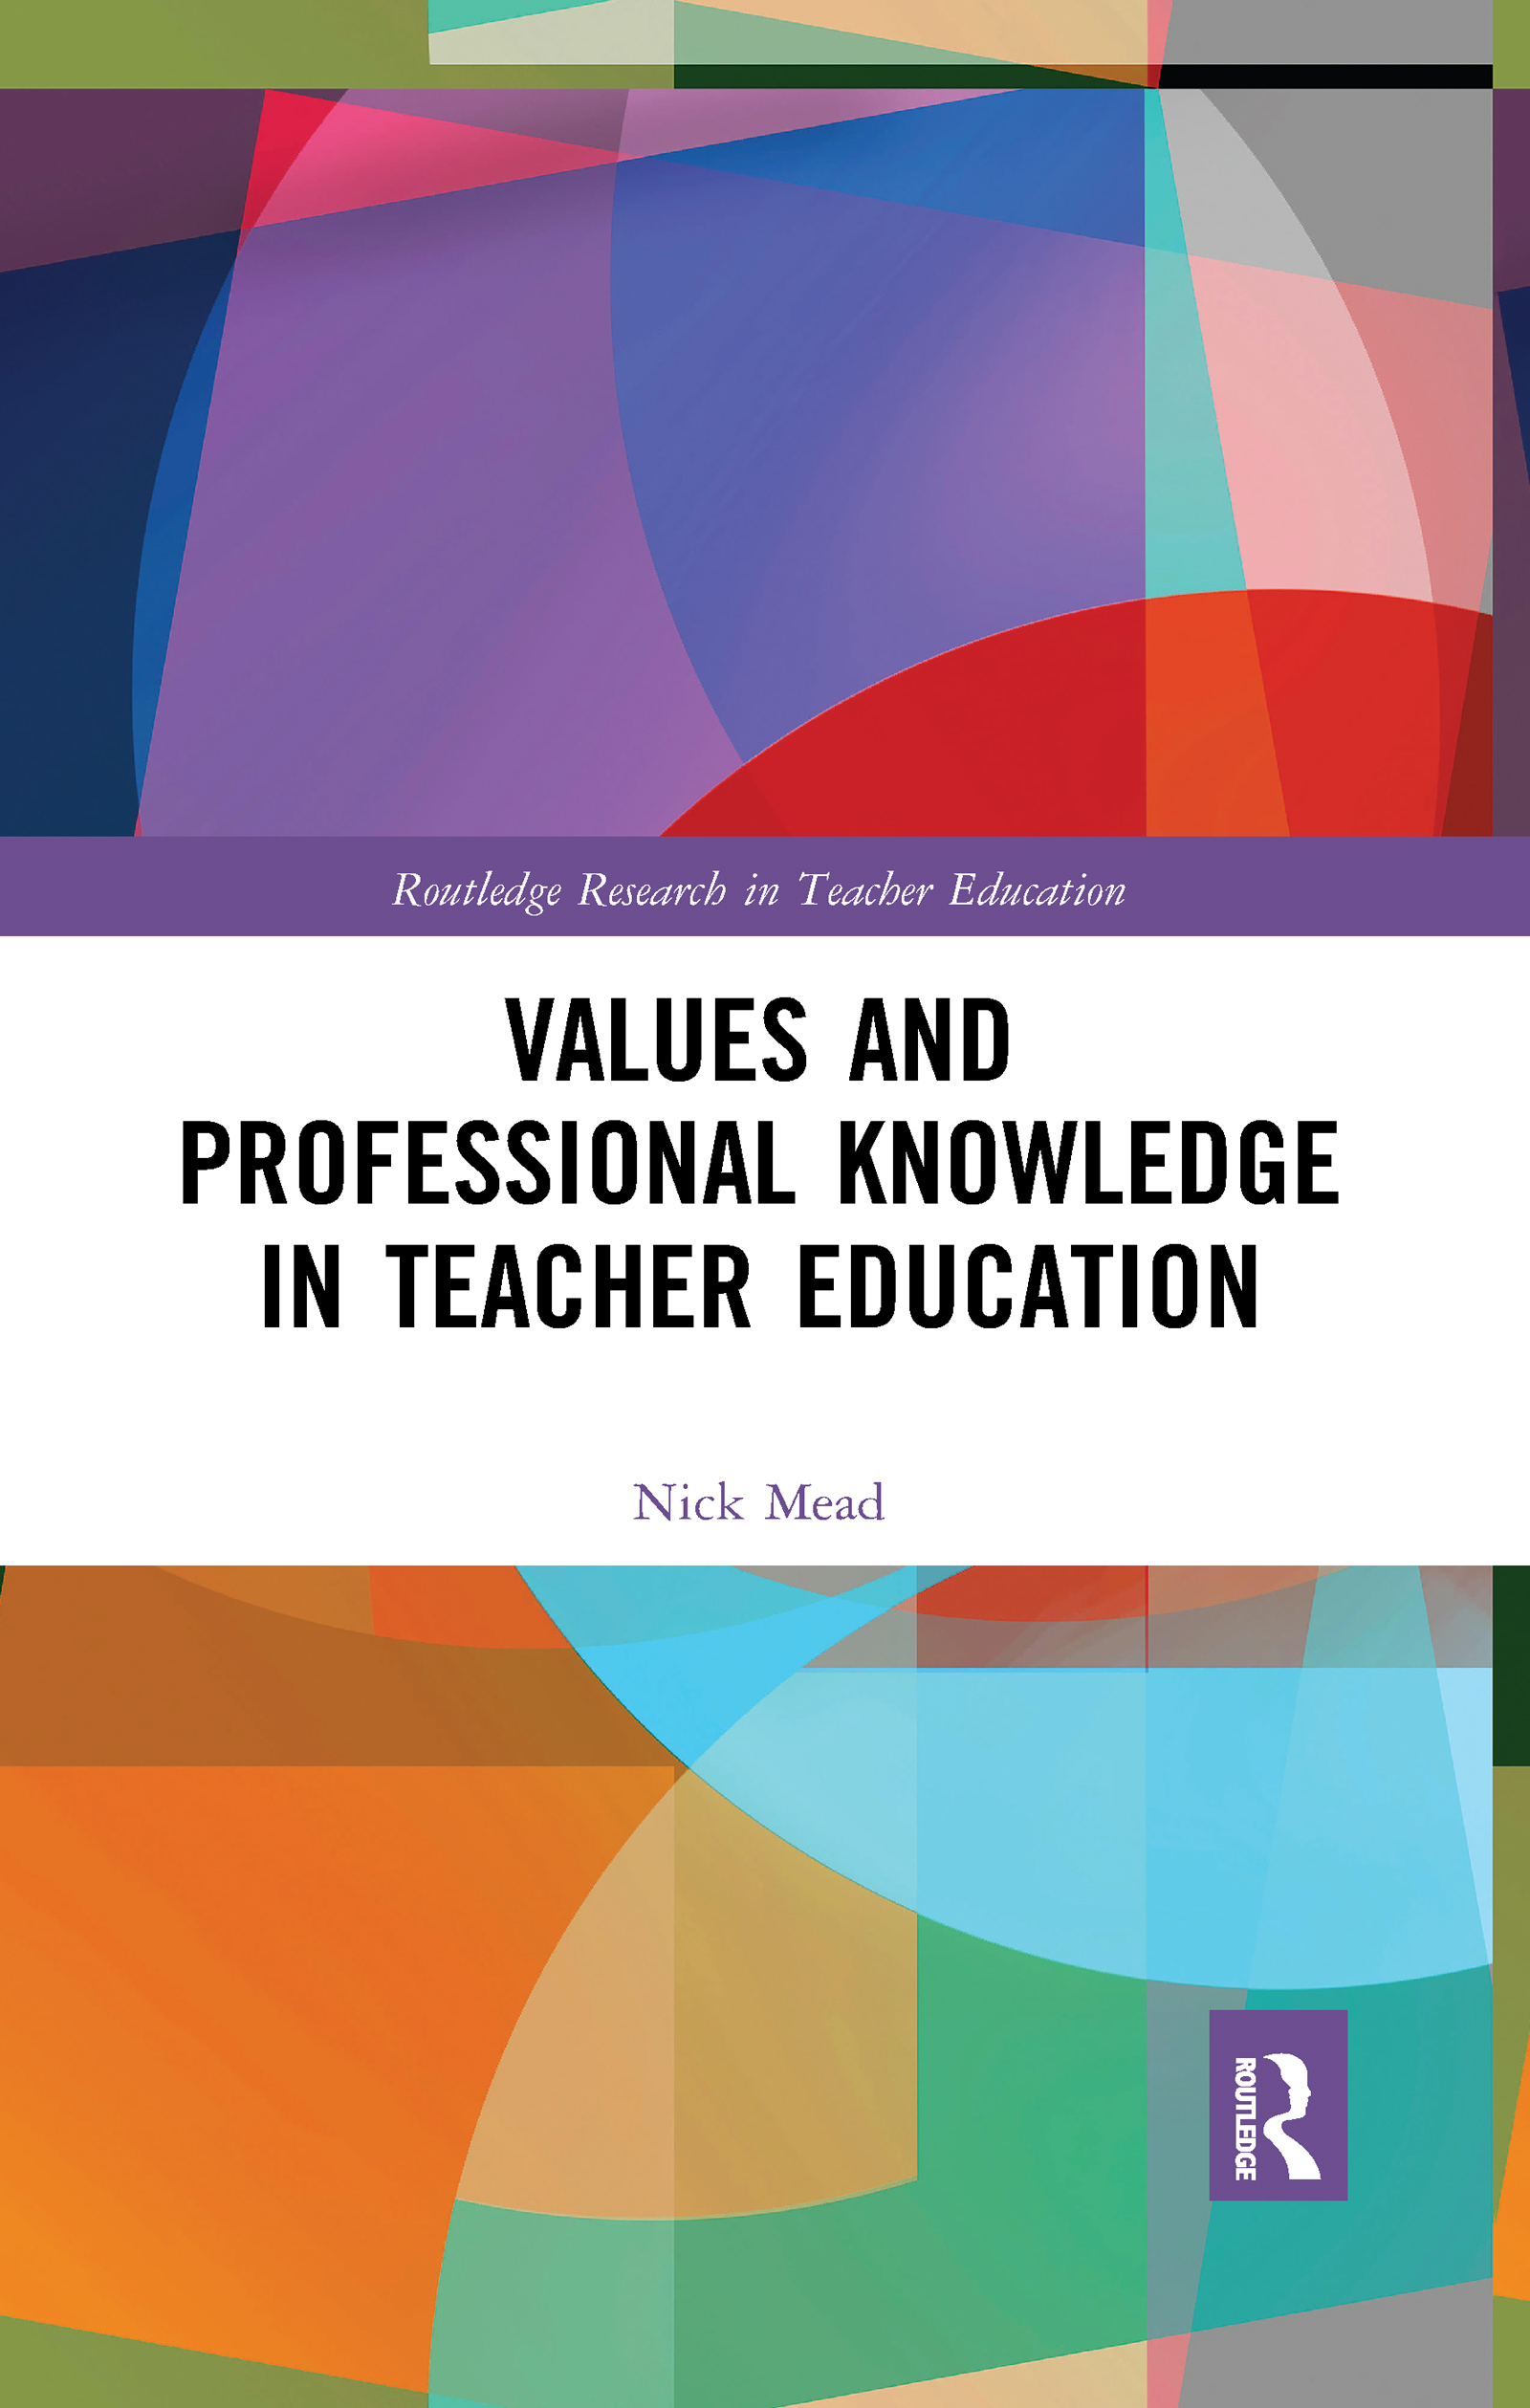 Values and Professional Knowledge in Teacher Education